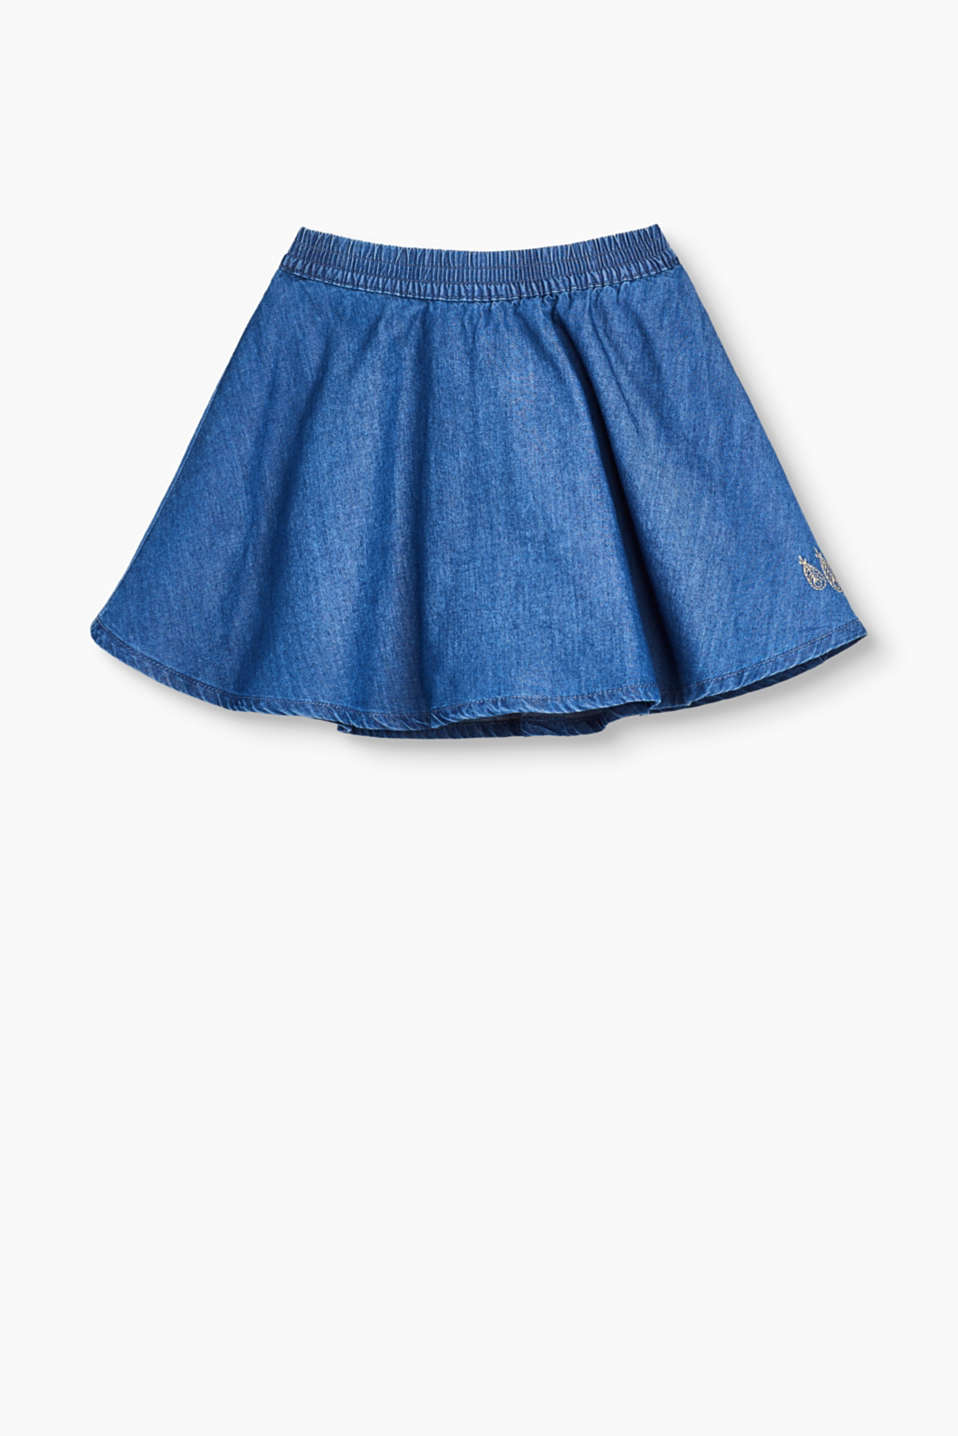 This flared denim skirt made of 100% cotton will liven up the autumn and winter wardrobe for little girls